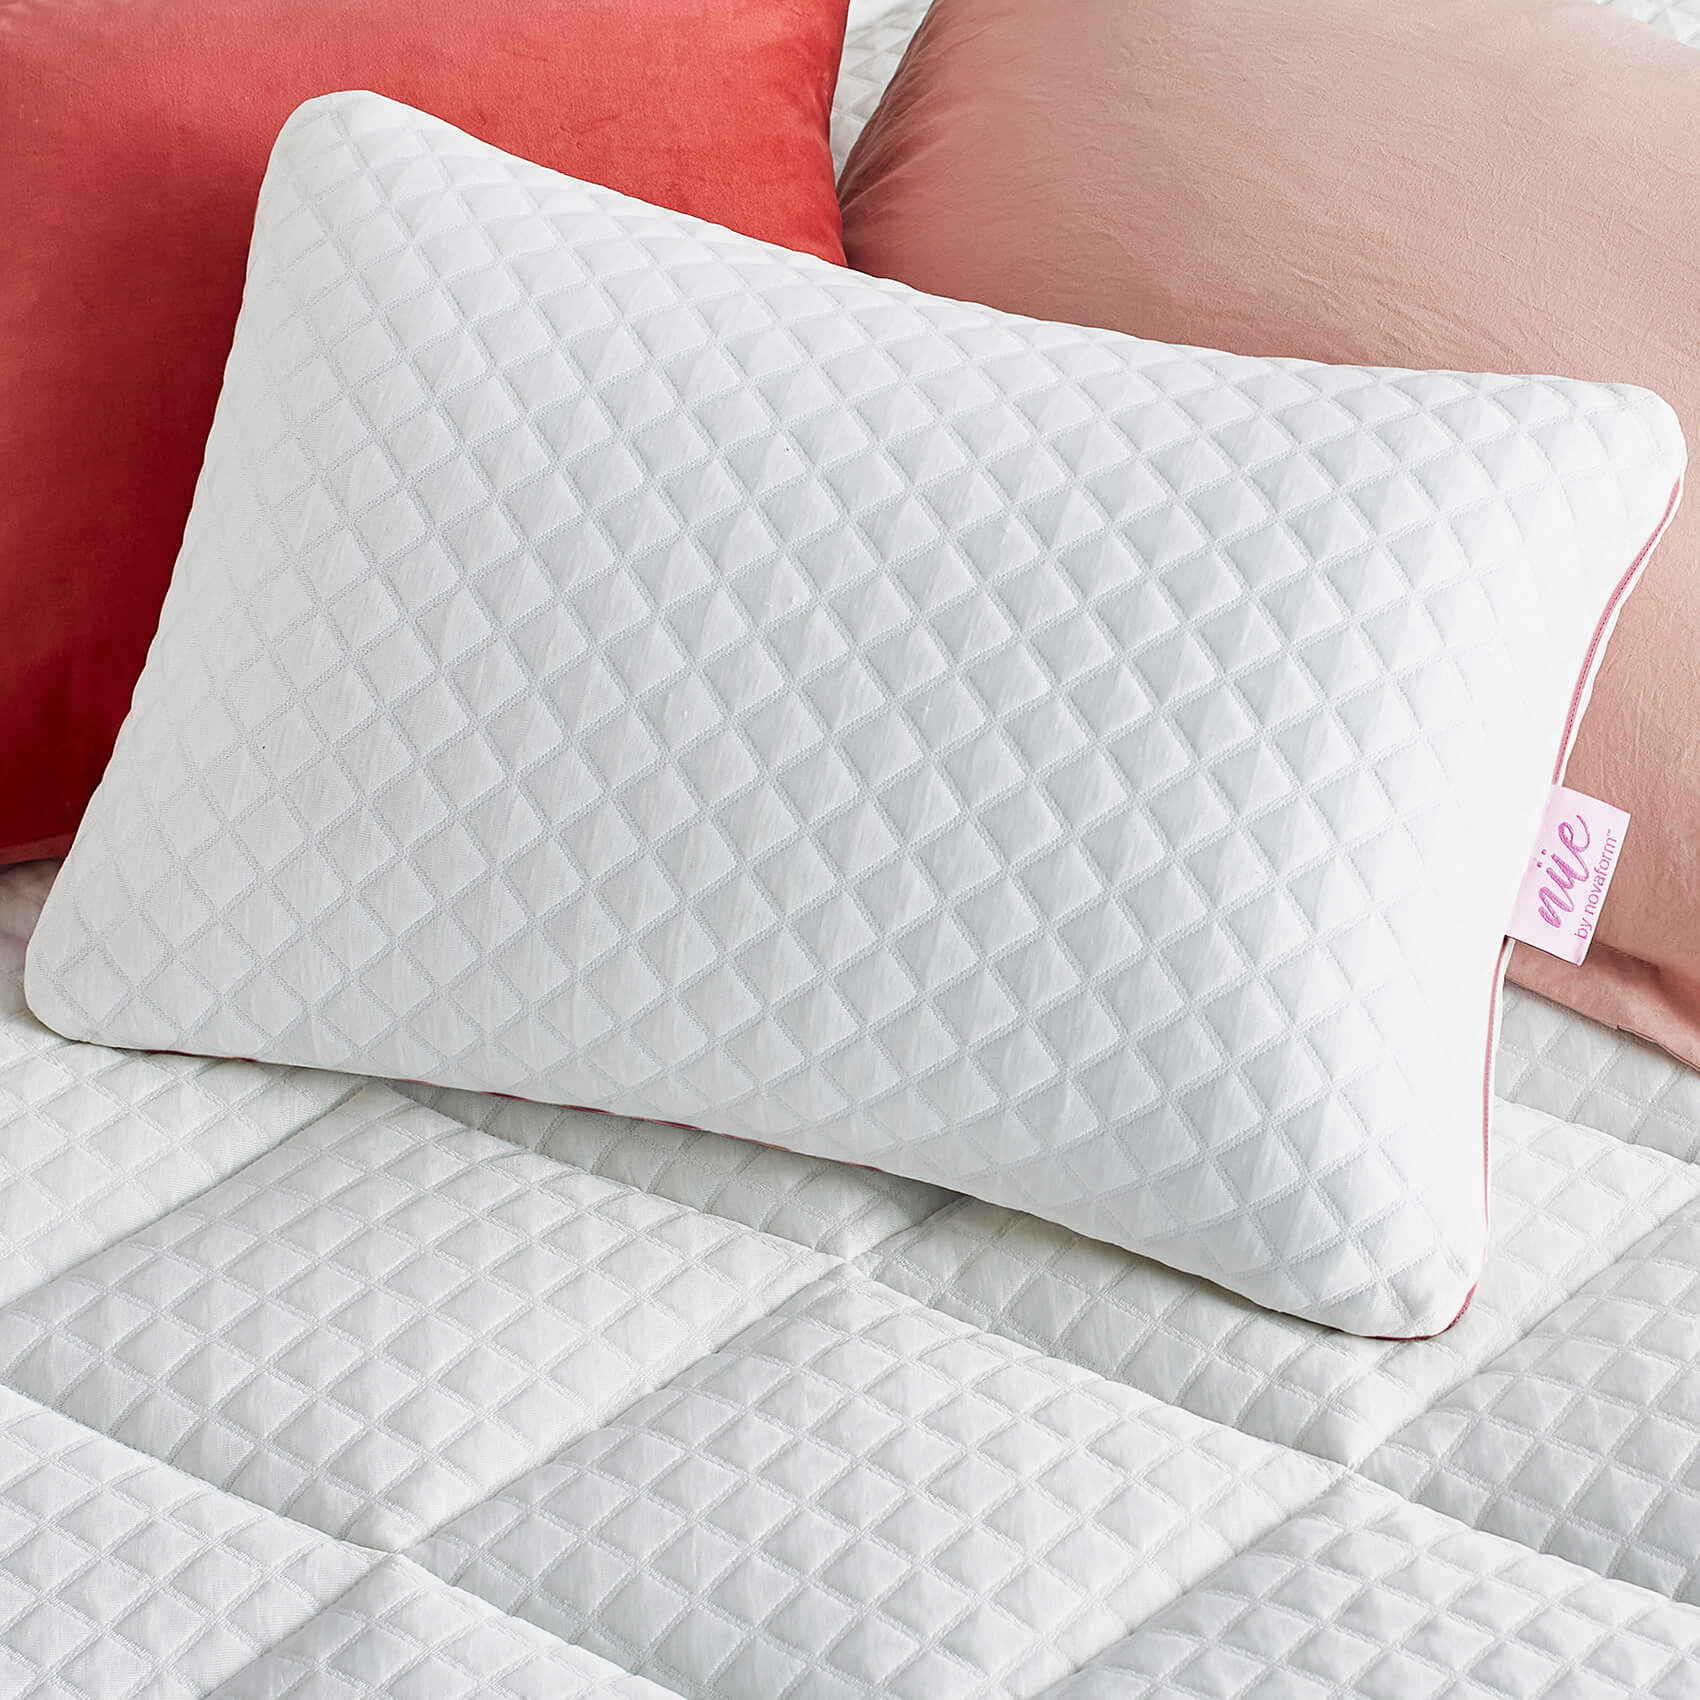 plush adjustable pillow with gel memory foam